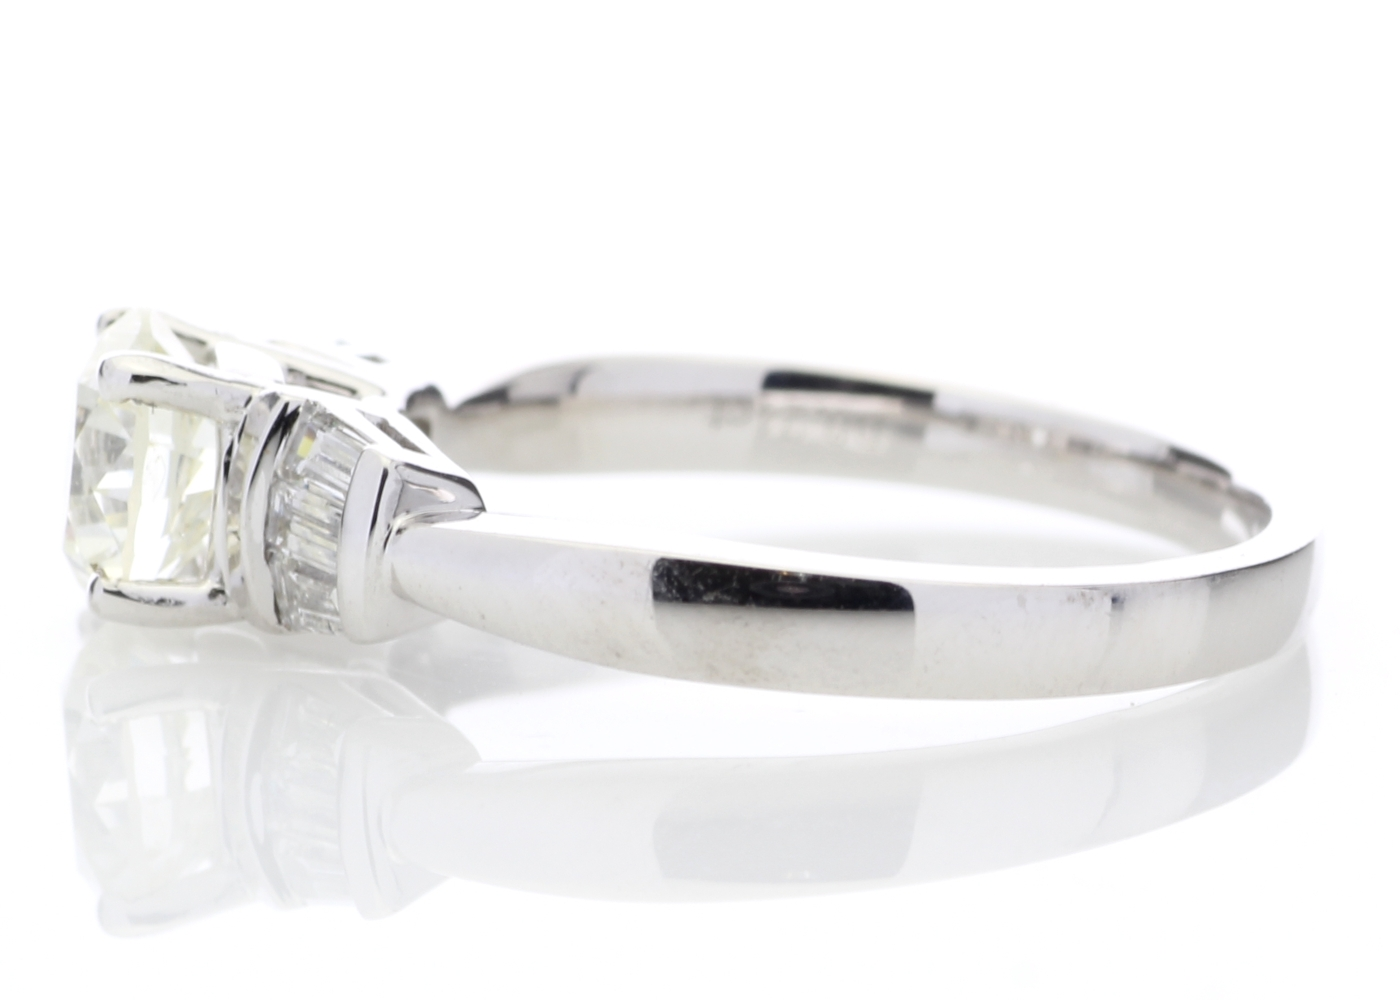 18ct White Gold Baguette Set Shoulders Diamond Ring 1.26 Carats - Image 3 of 4